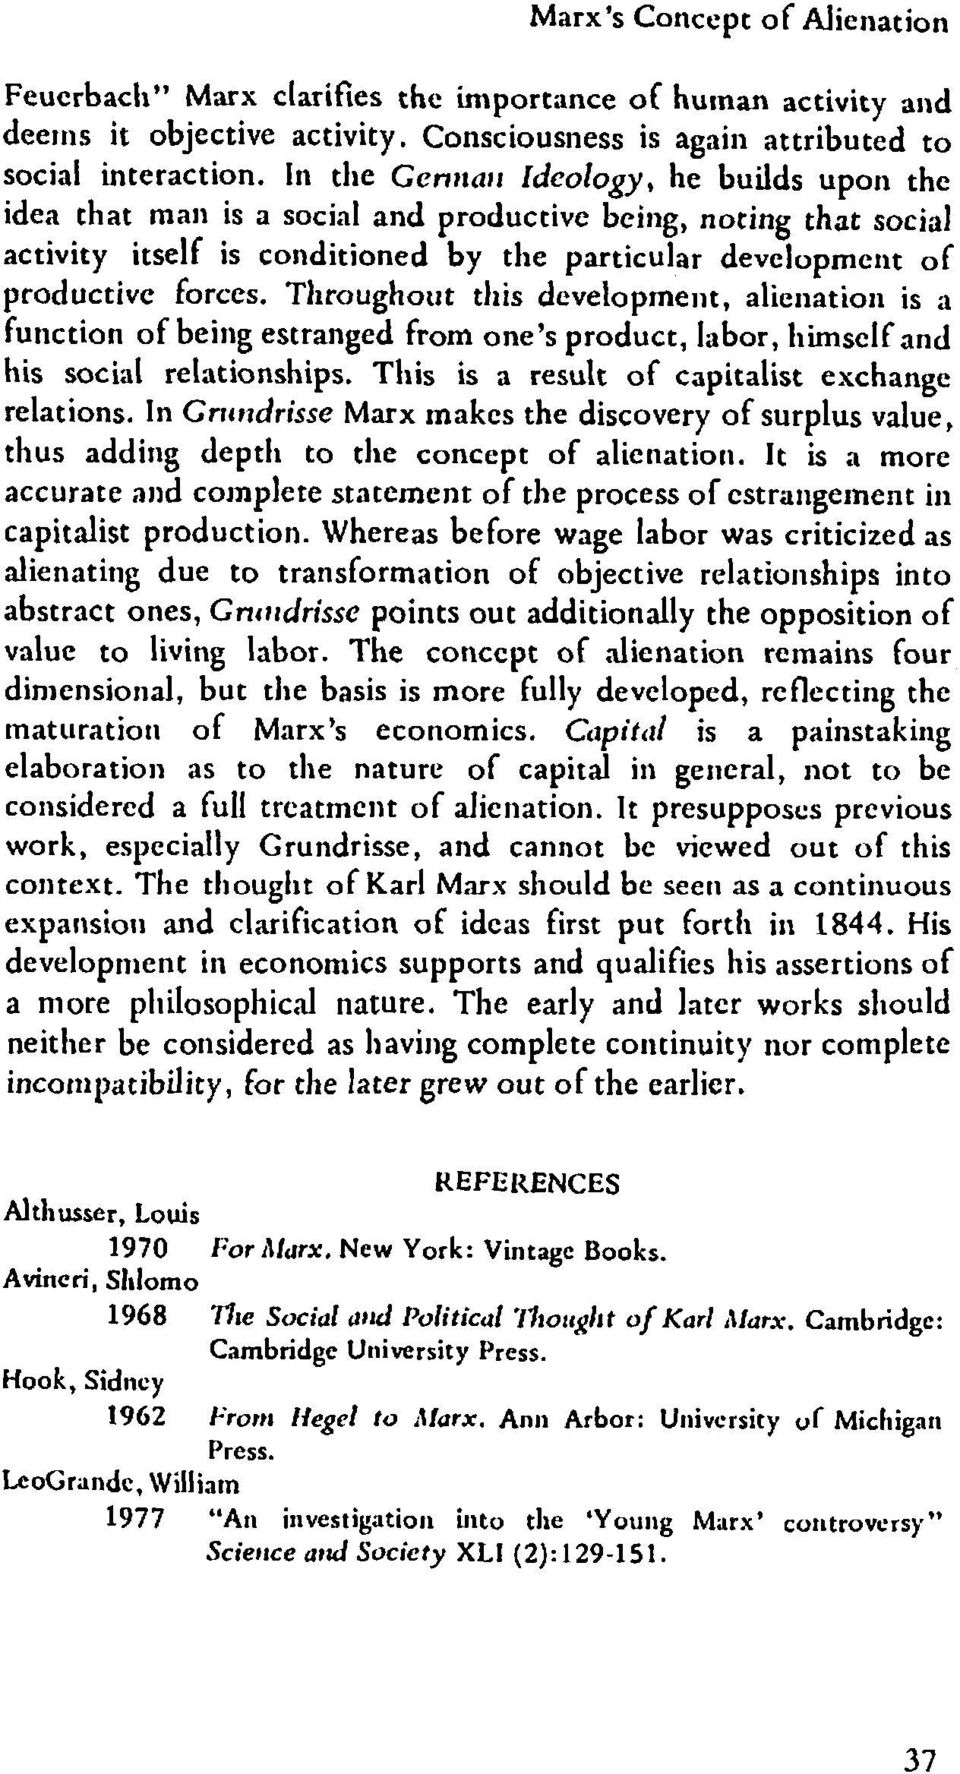 "max weber s concept of alienation Weber, max gerth & mills eds ""politics as a vocation"" in from max weber: essays in sociology (new york: routledge, 2013) weber, max gerth & mills eds ""the types of authority and imperative coordination"" in from max weber: essays in sociology (new york: routledge, 2013) foucault, michel m."